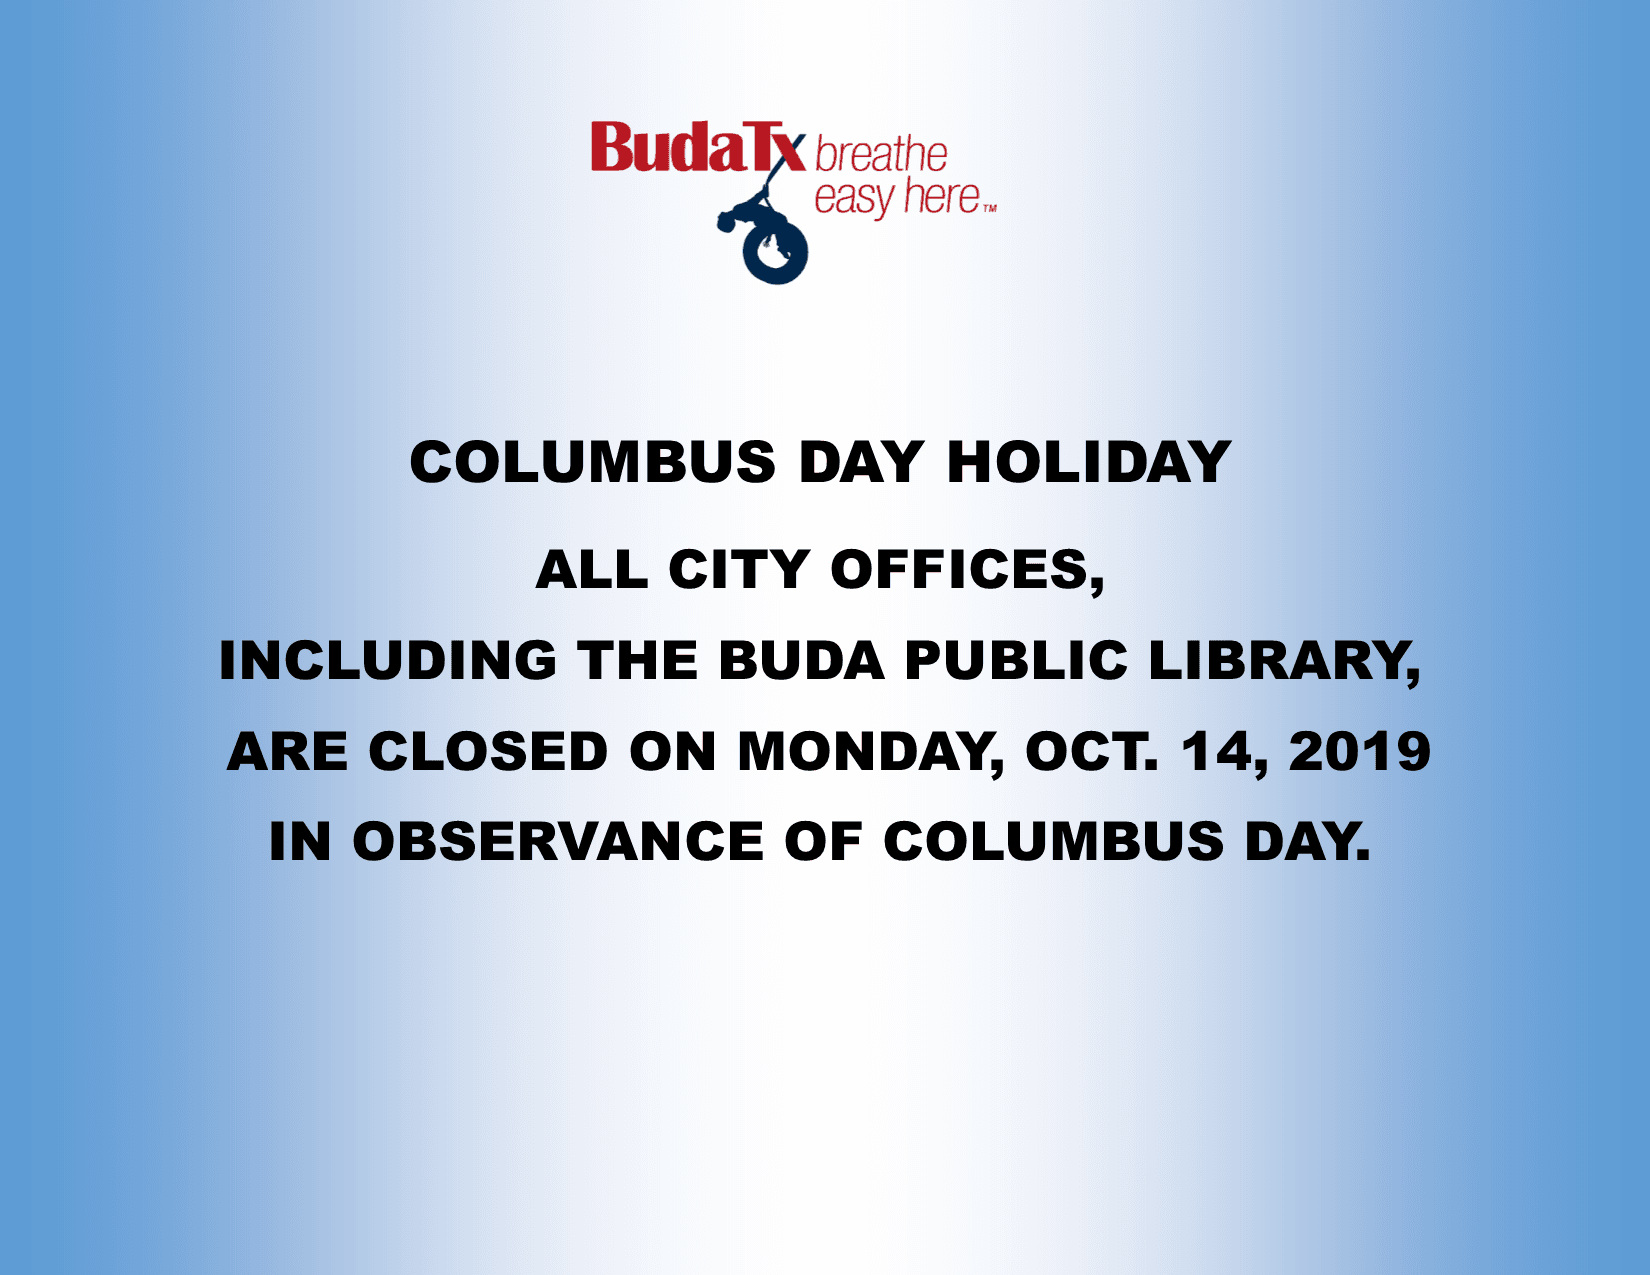 Columbus Day Holiday - Oct. 14, 2019